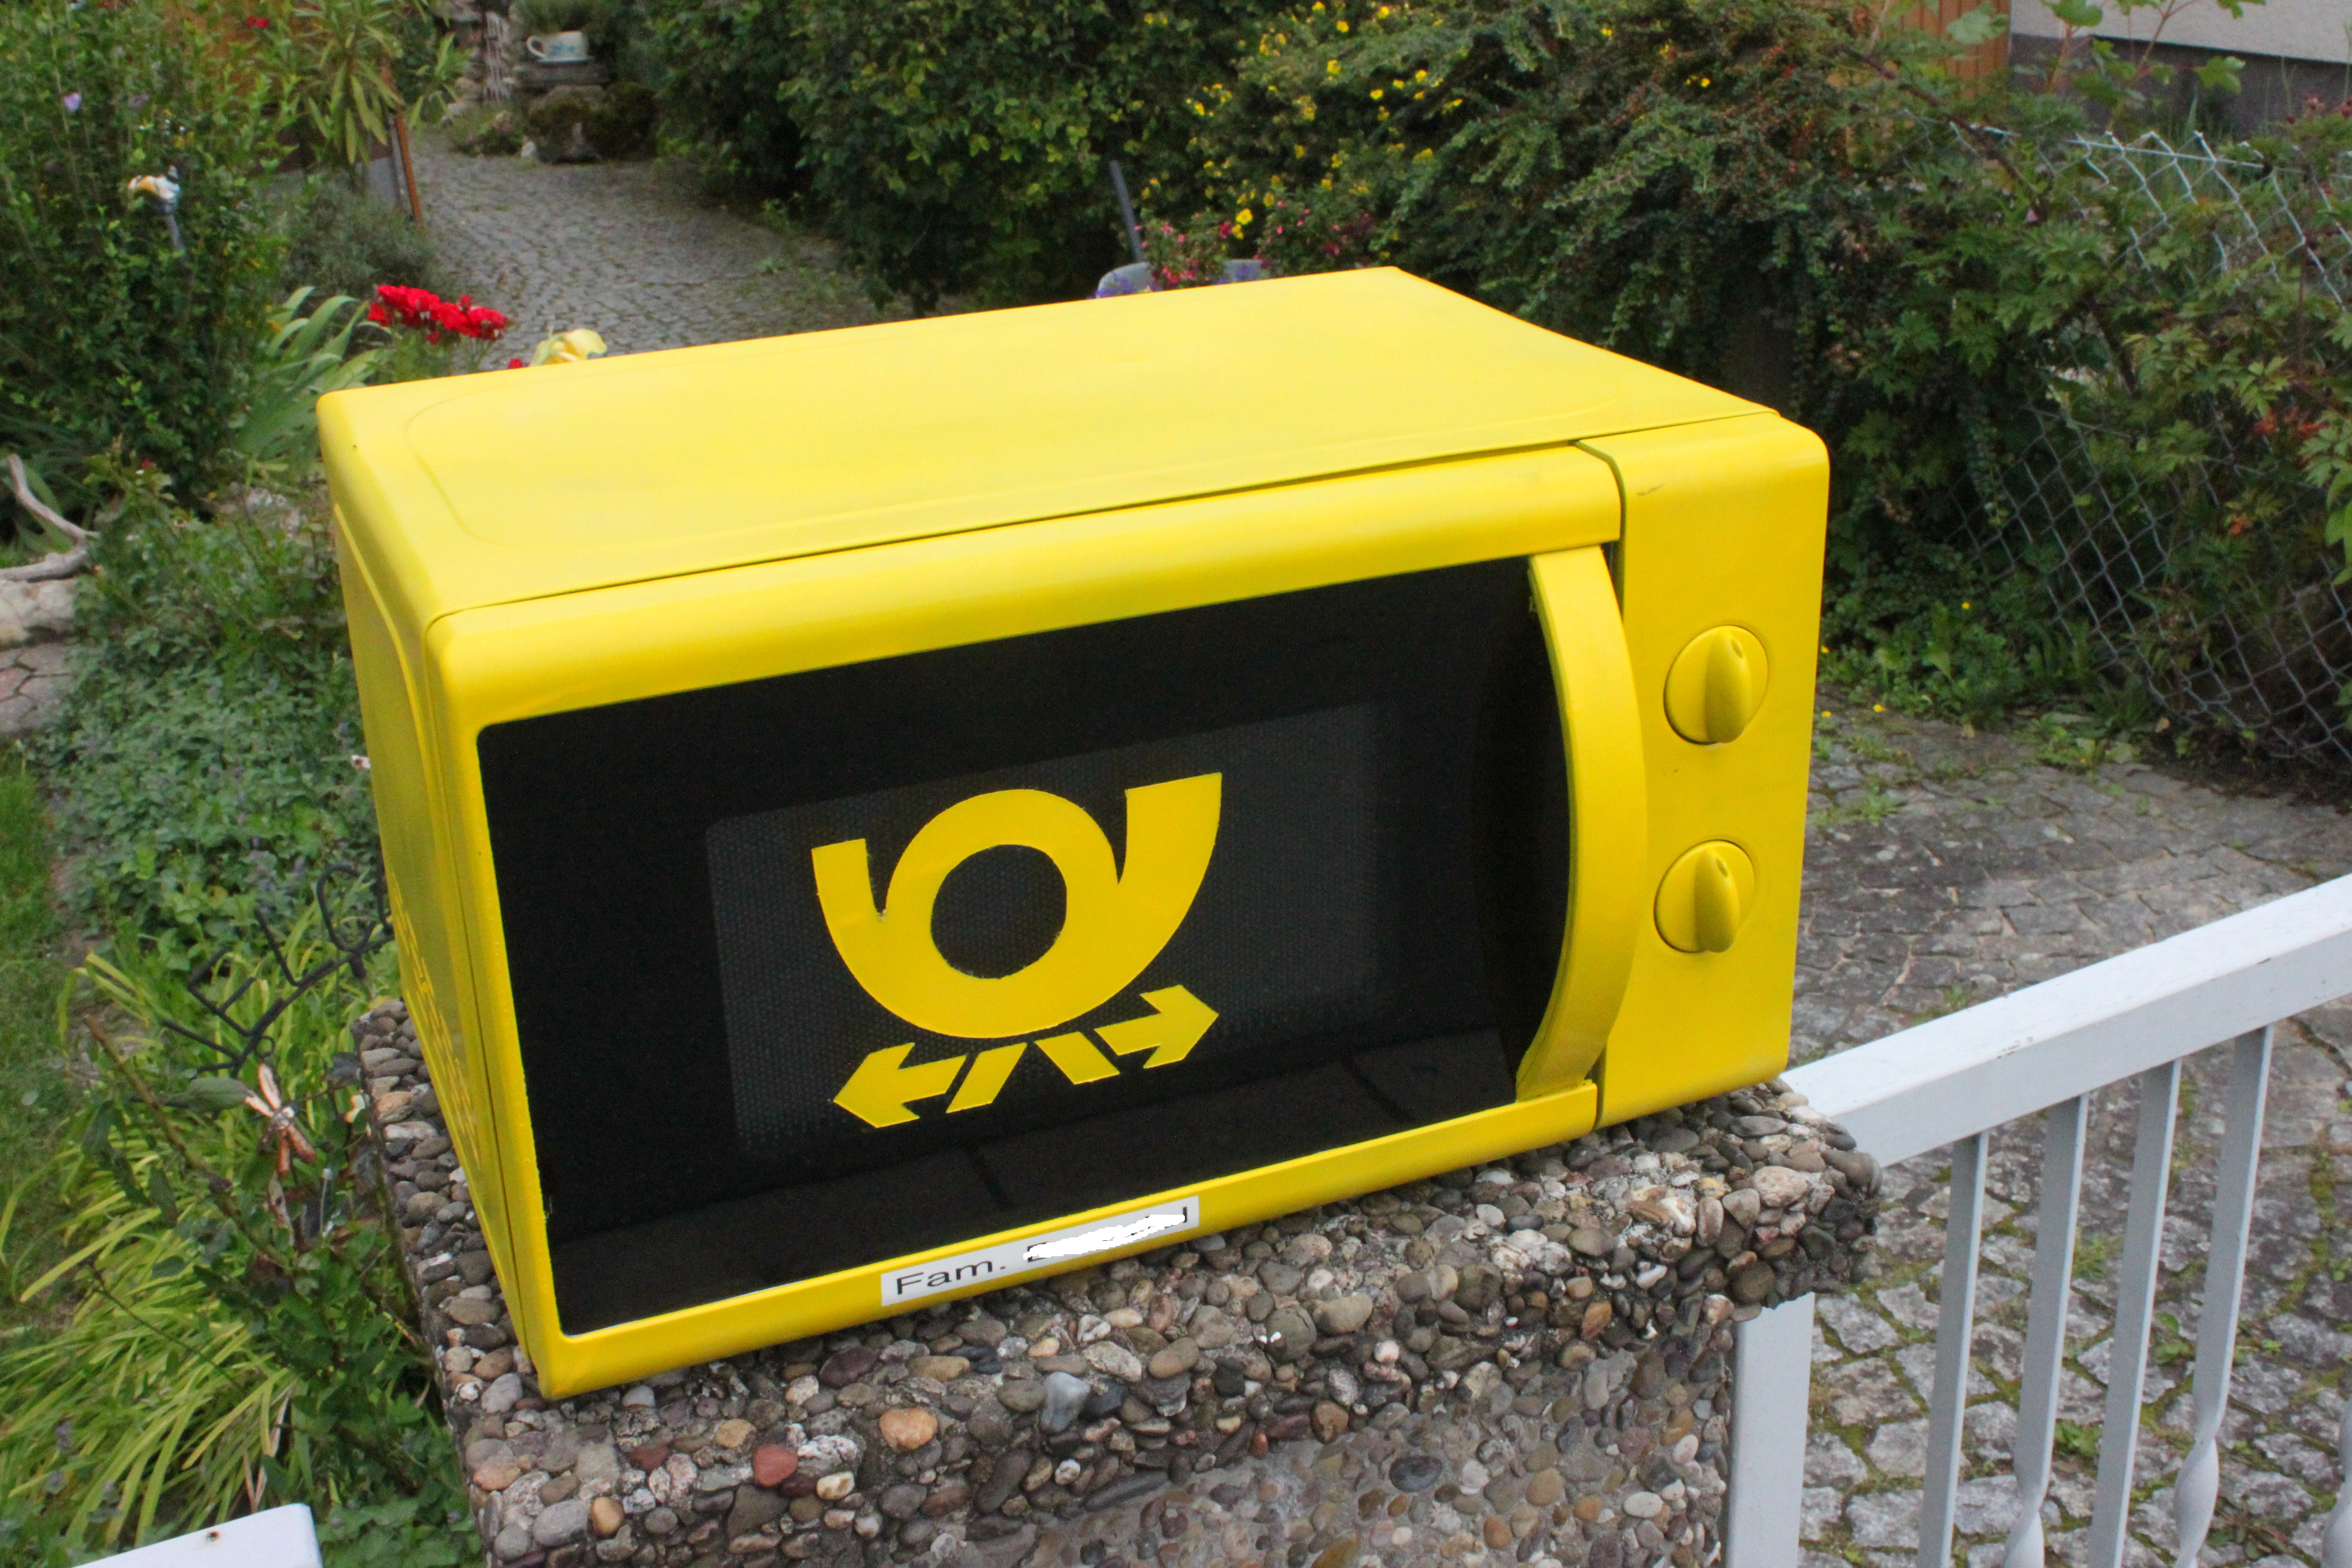 Microwave oven post box